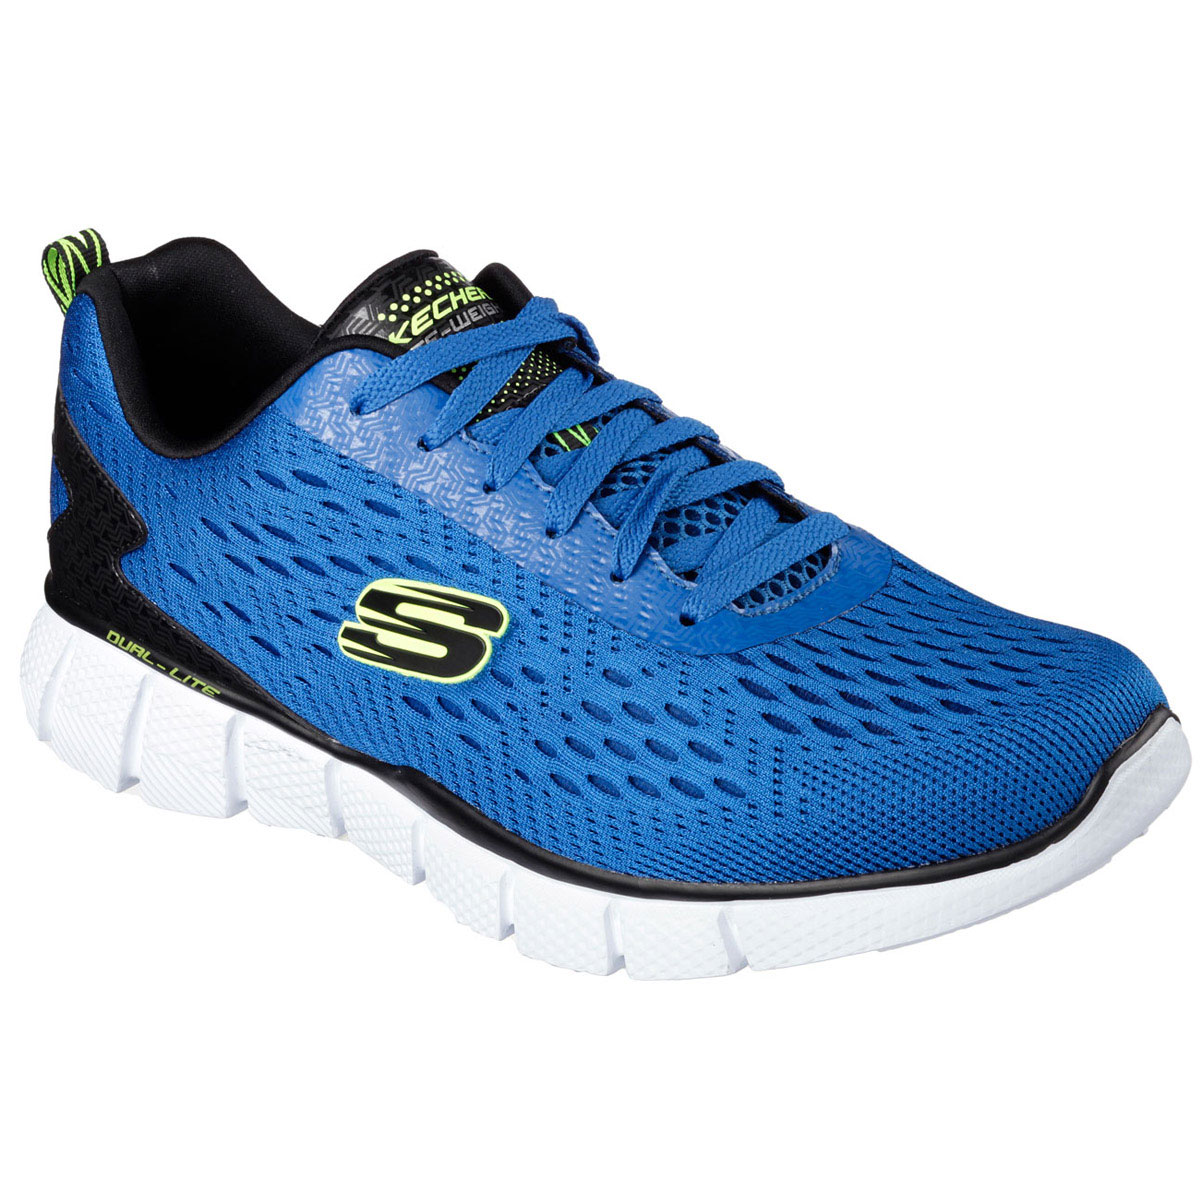 are skechers memory foam good for running